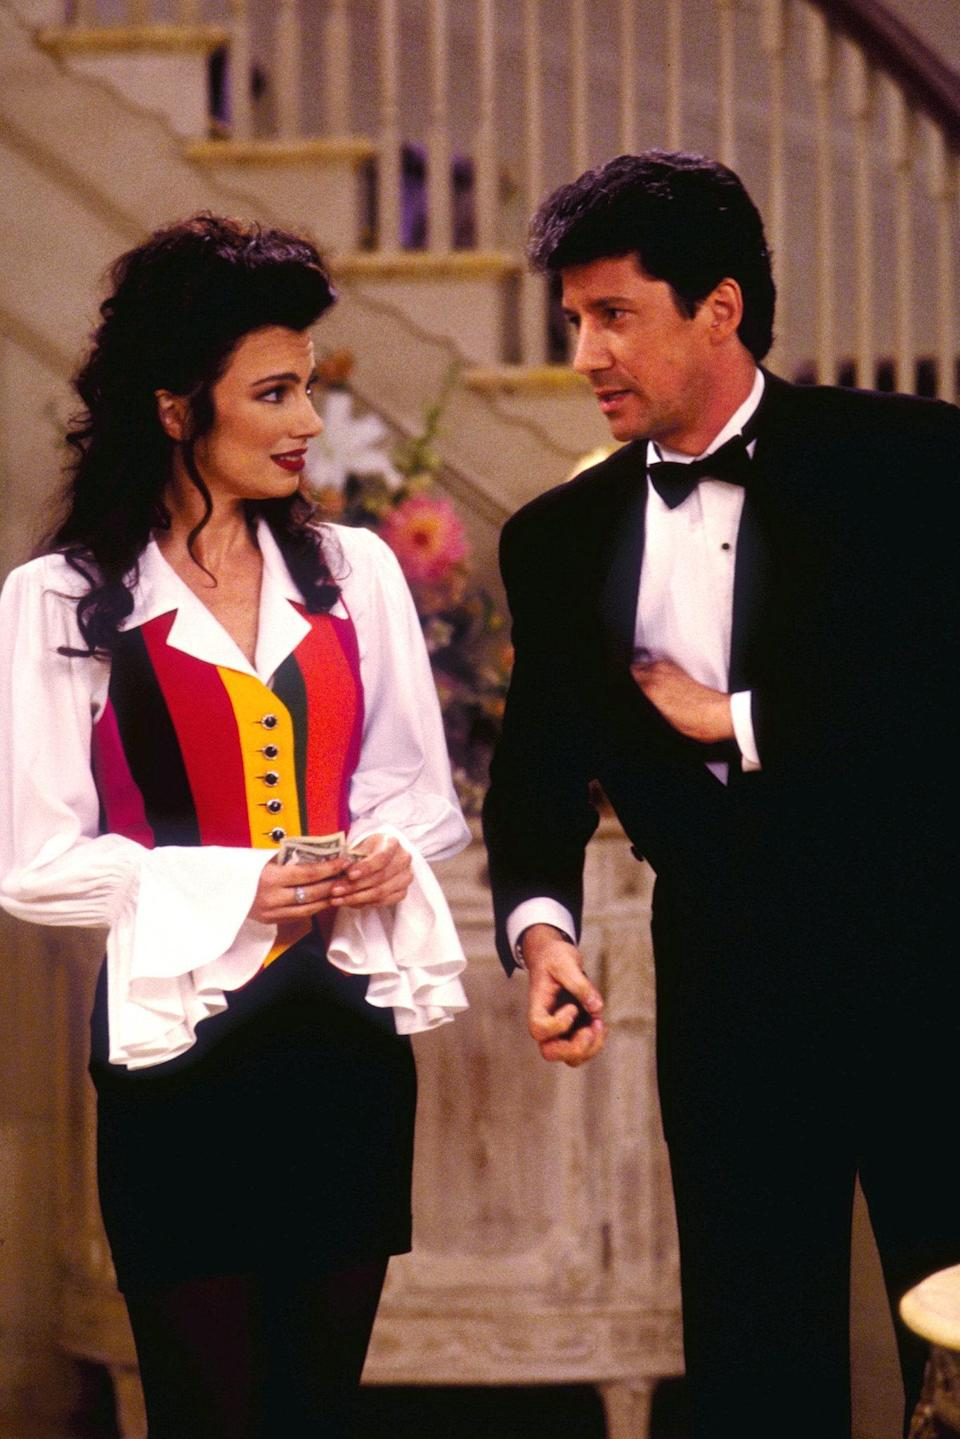 LOS ANGELES - JANUARY 3: THE NANNY, featuring Fran Drescher and Charles Shaugnessy. January 1994. (Photo by CBS via Getty Images)